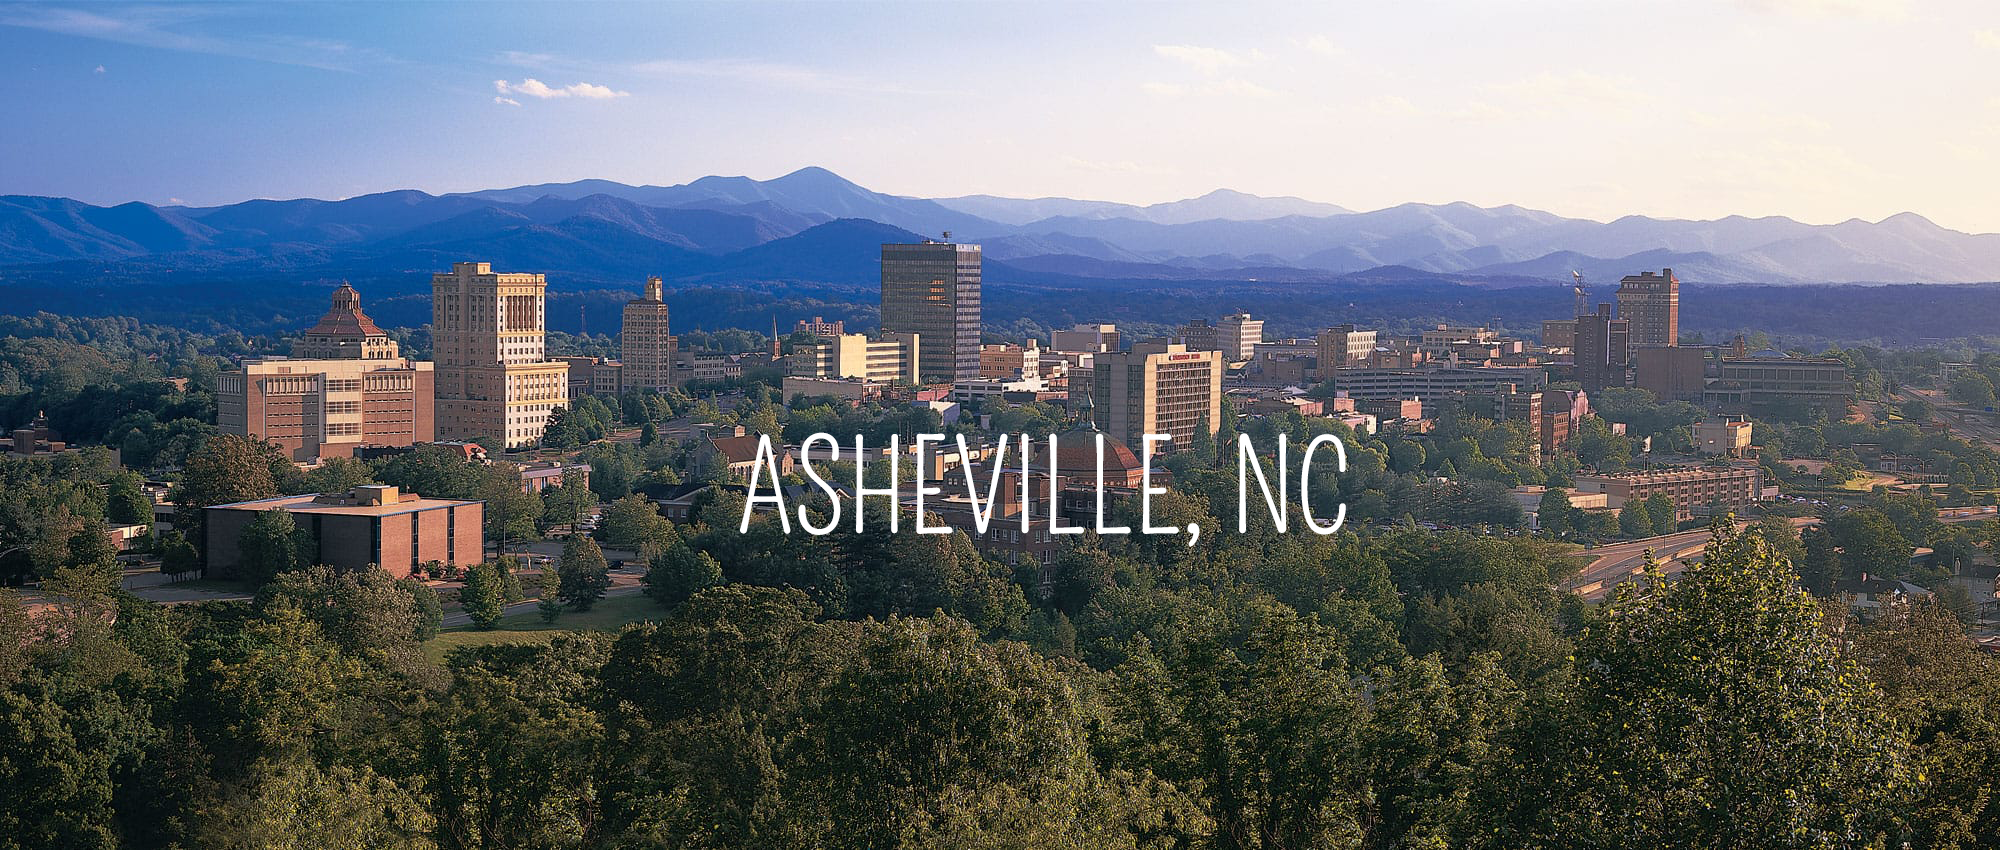 asheville2.png